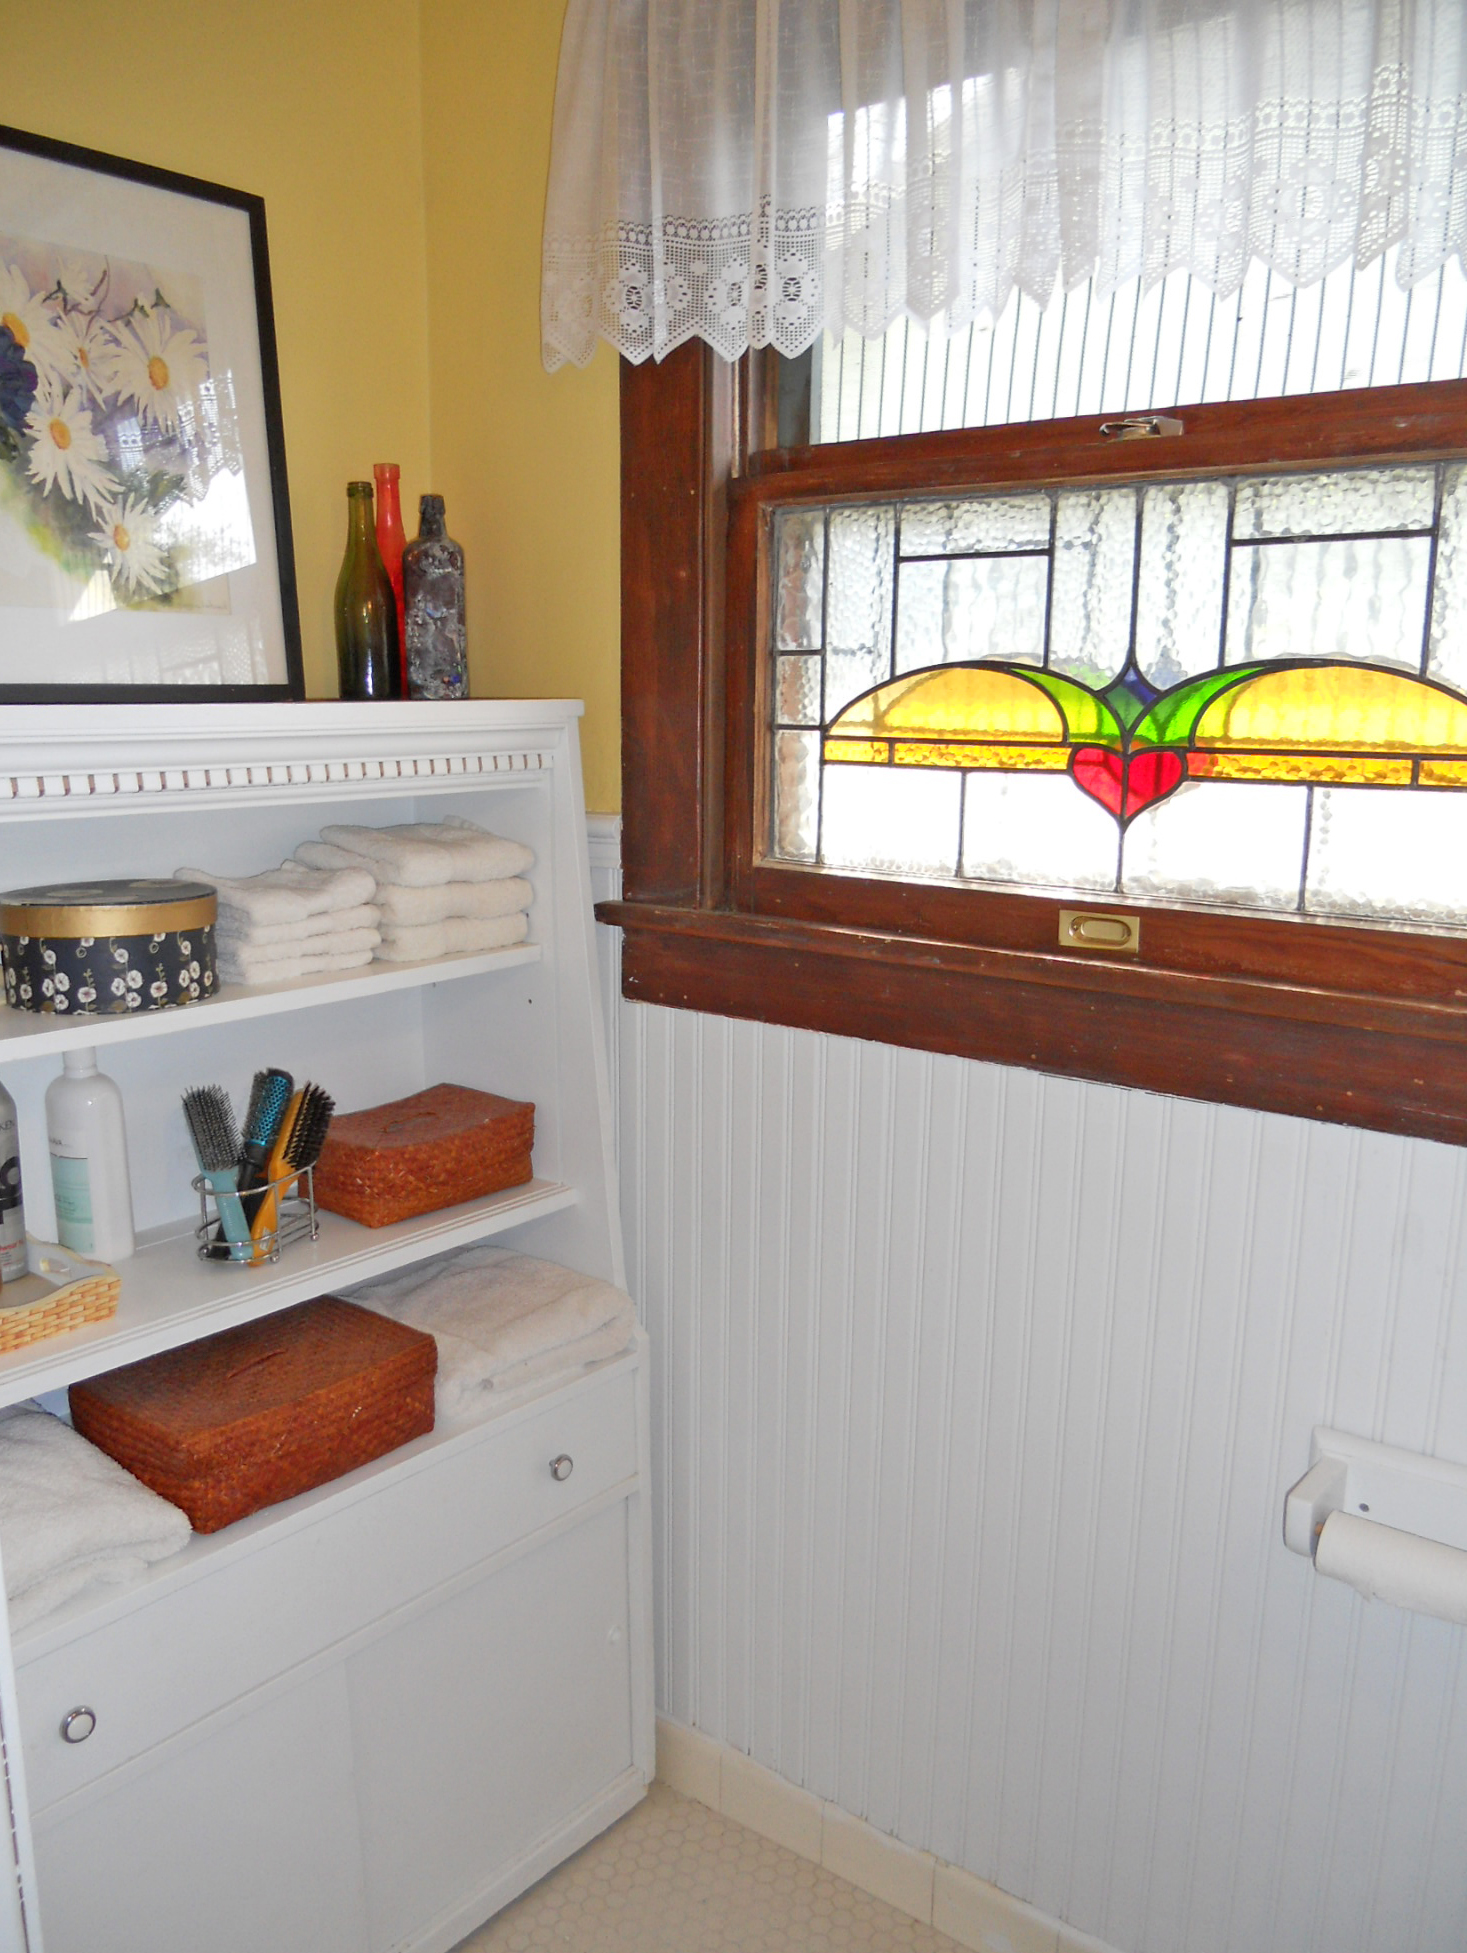 Alternate view of bathroom with beadboard and room for linen cabinet.